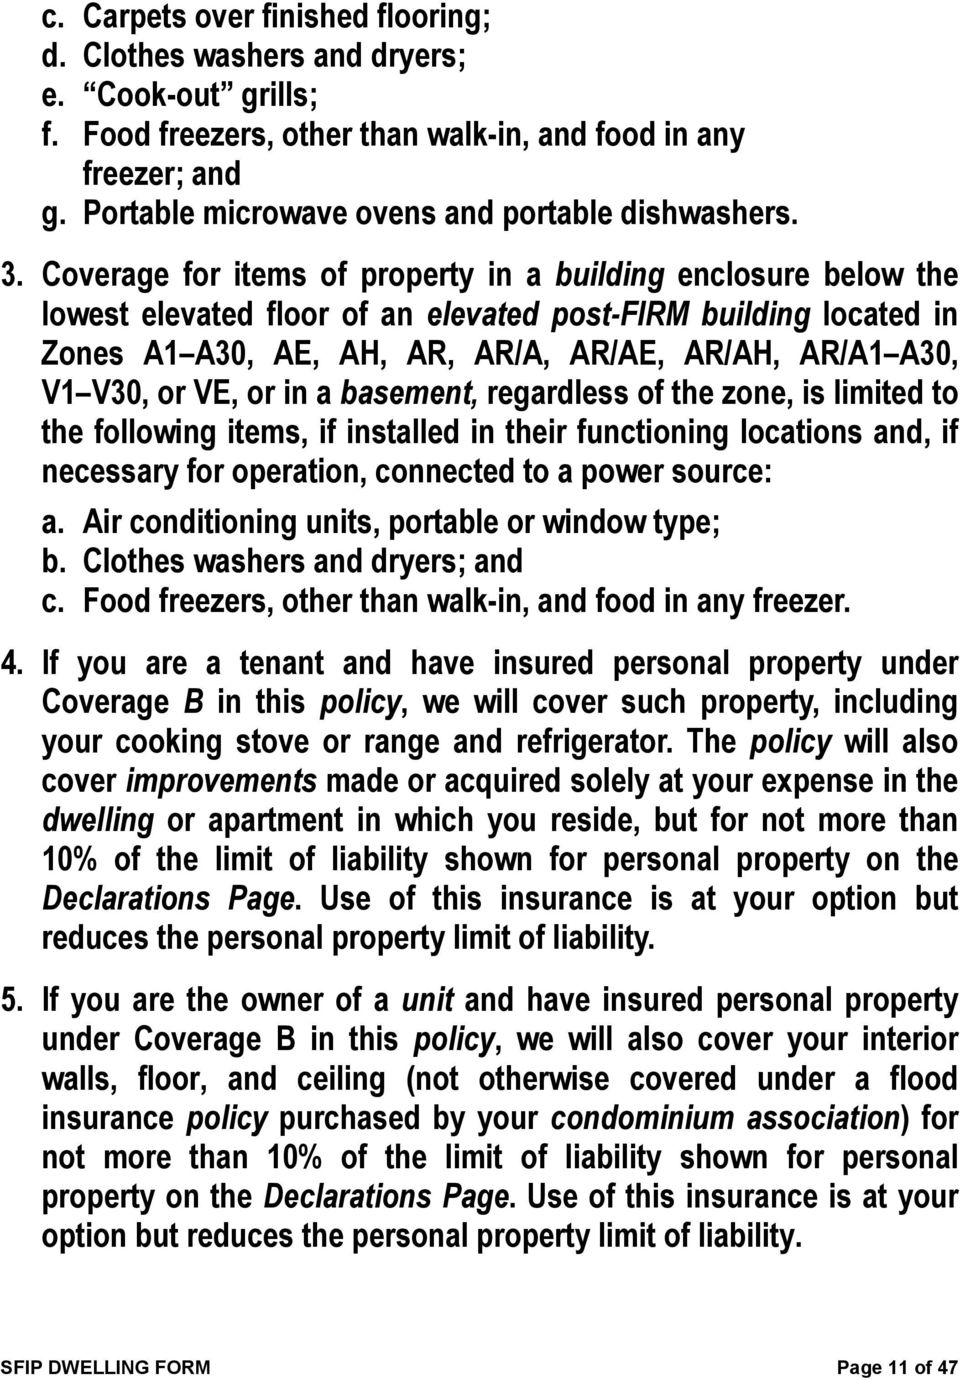 Coverage for items of property in a building enclosure below the lowest elevated floor of an elevated post-firm building located in Zones A1 A30, AE, AH, AR, AR/A, AR/AE, AR/AH, AR/A1 A30, V1 V30, or